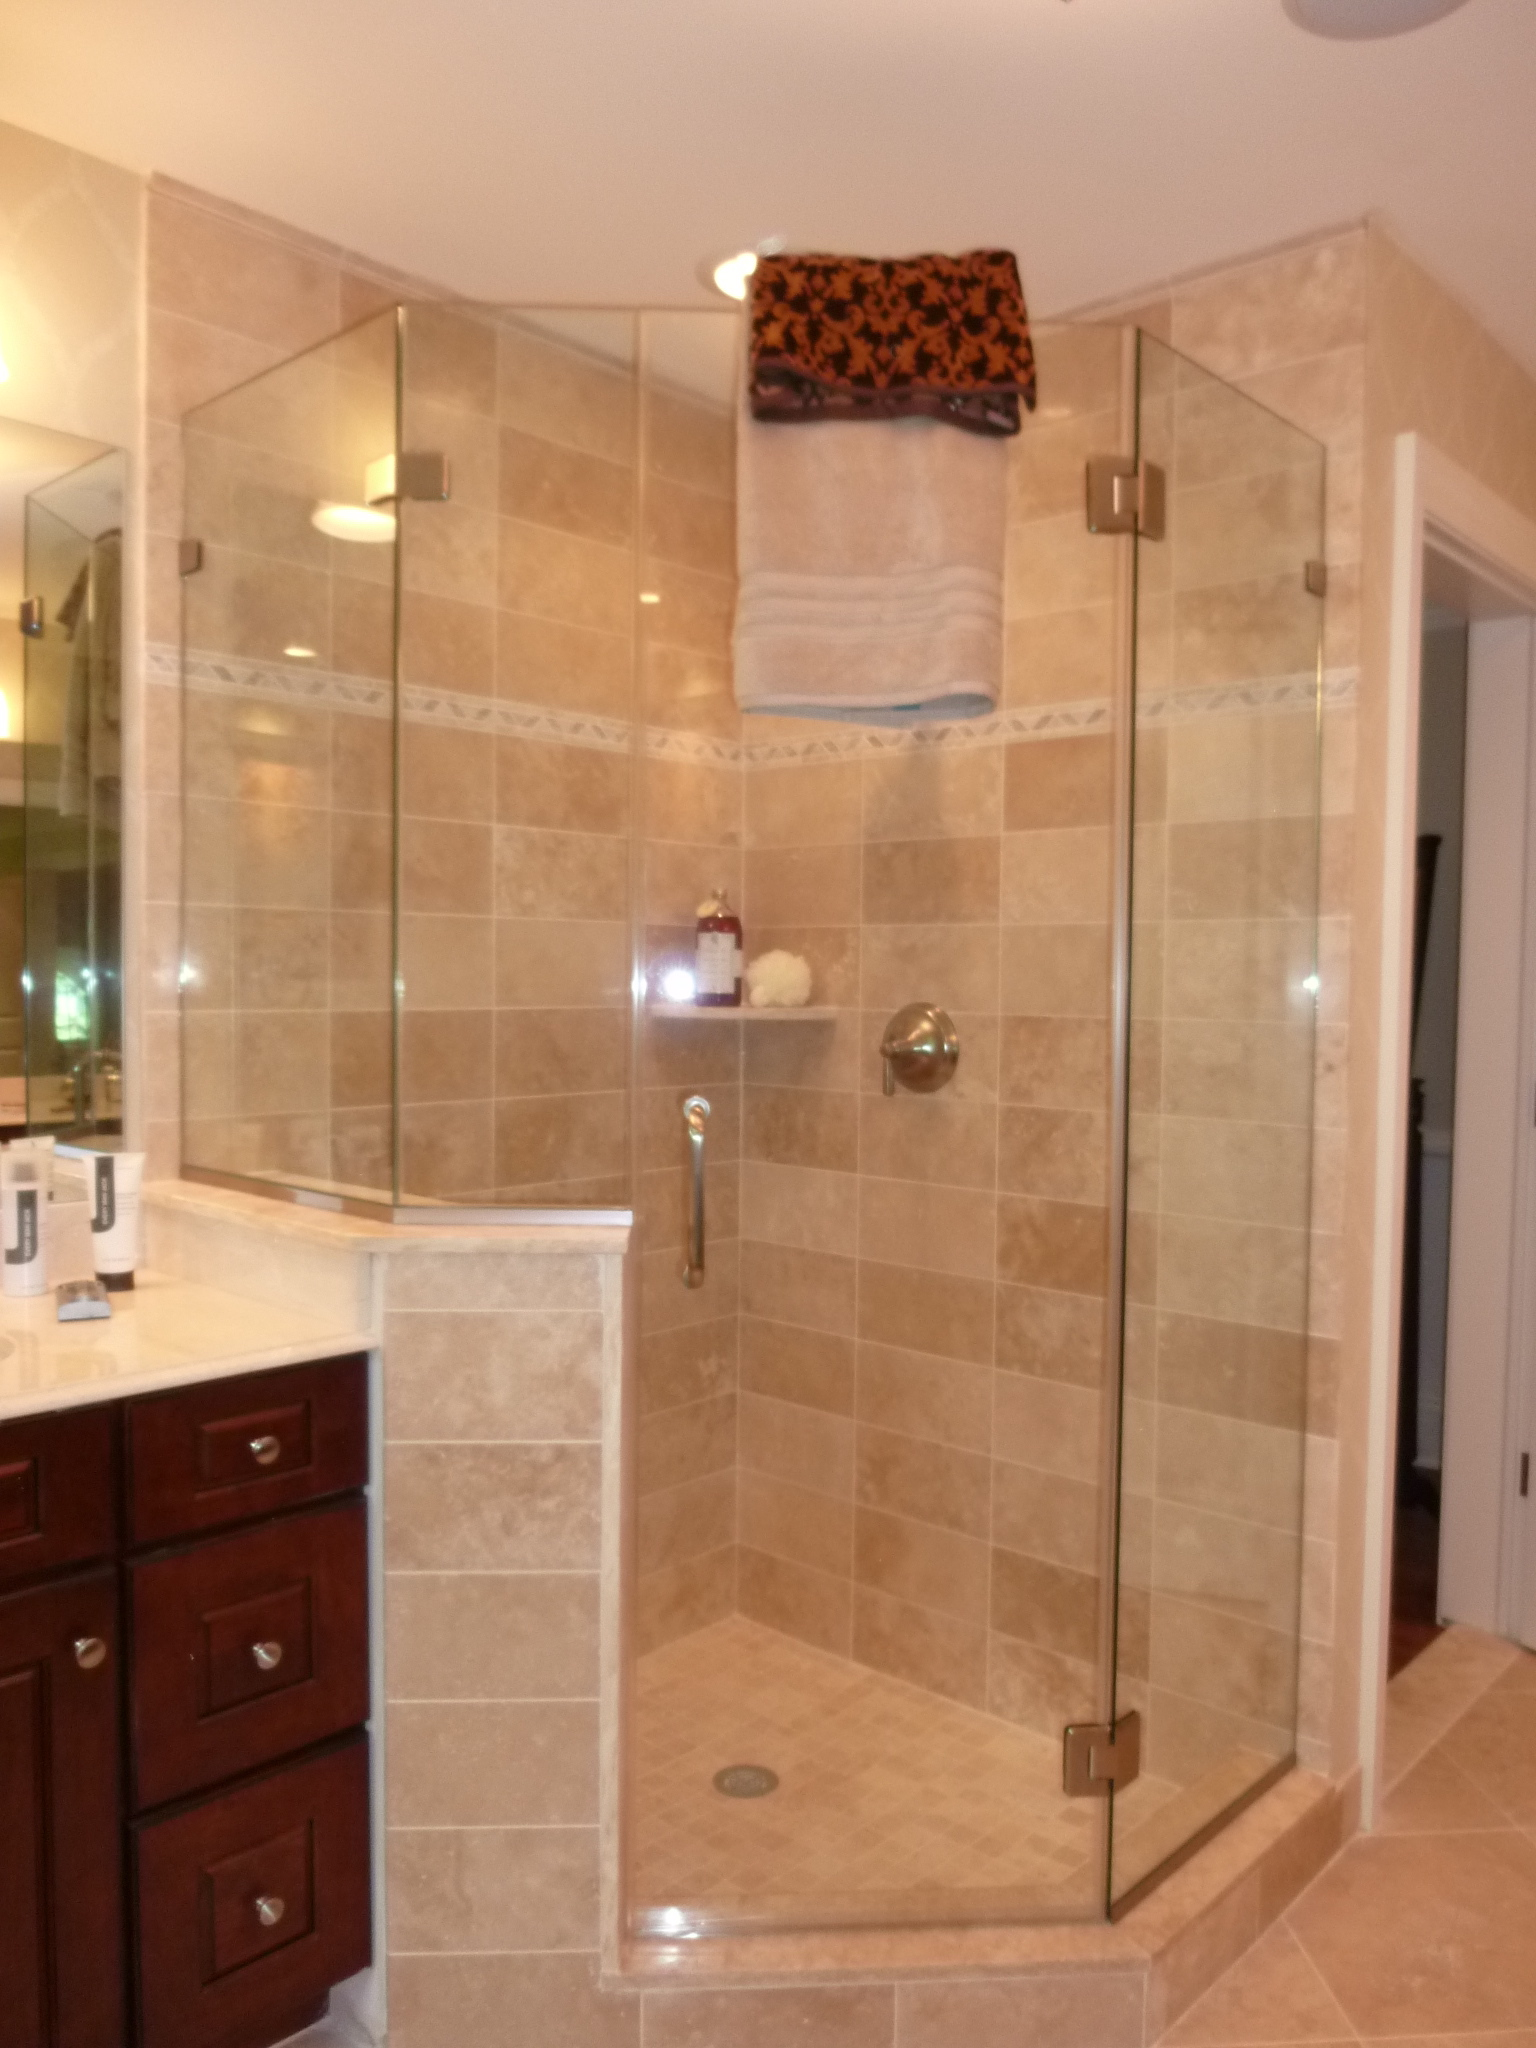 Bathroom remodeling nj bathroom design new jersey bath for Bathroom remodeling nj